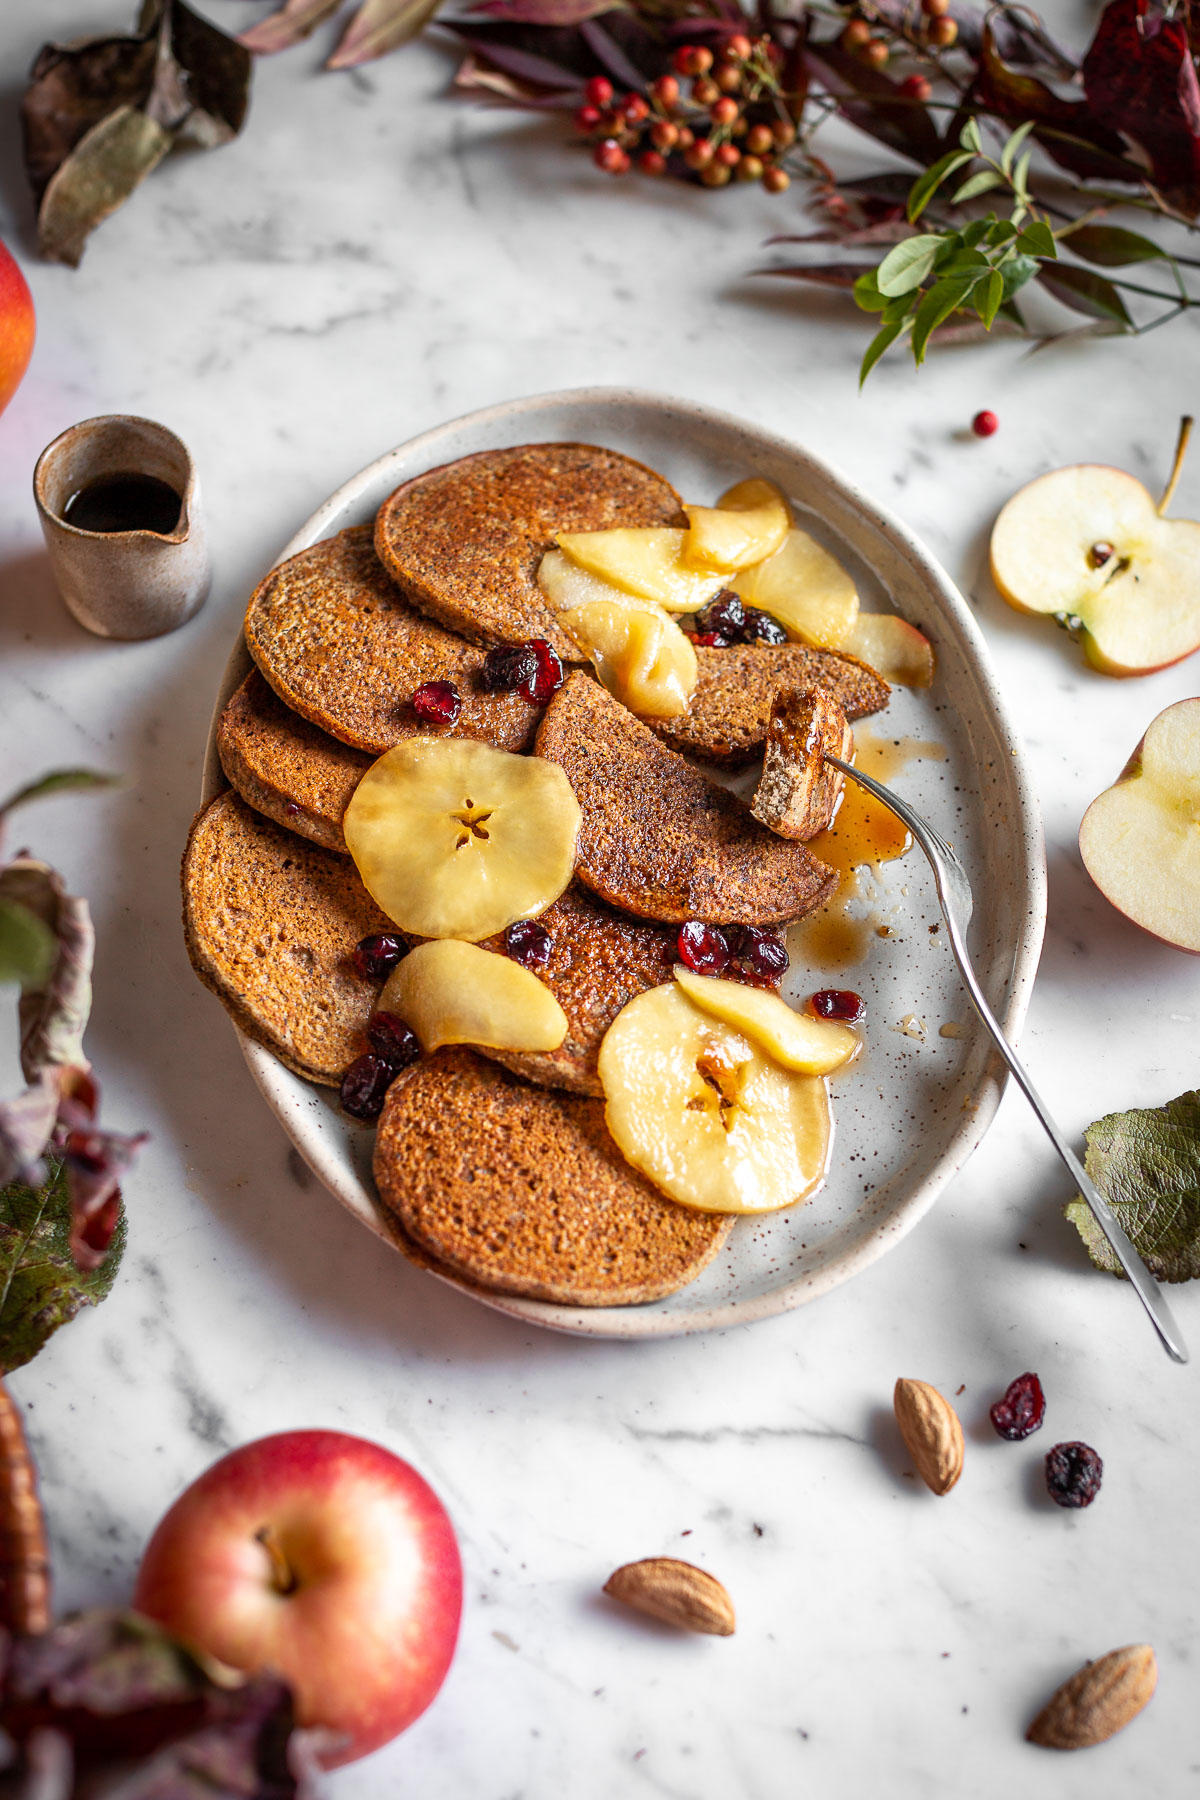 gluten-free VEGAN APPLE BUCKWHEAT PANCAKES recipe with caramelized apples and cranberries ricetta PANCAKES VEGAN di GRANO SARACENO e MELE SENZA GLUTINE con mele caramellate cranberry datteri